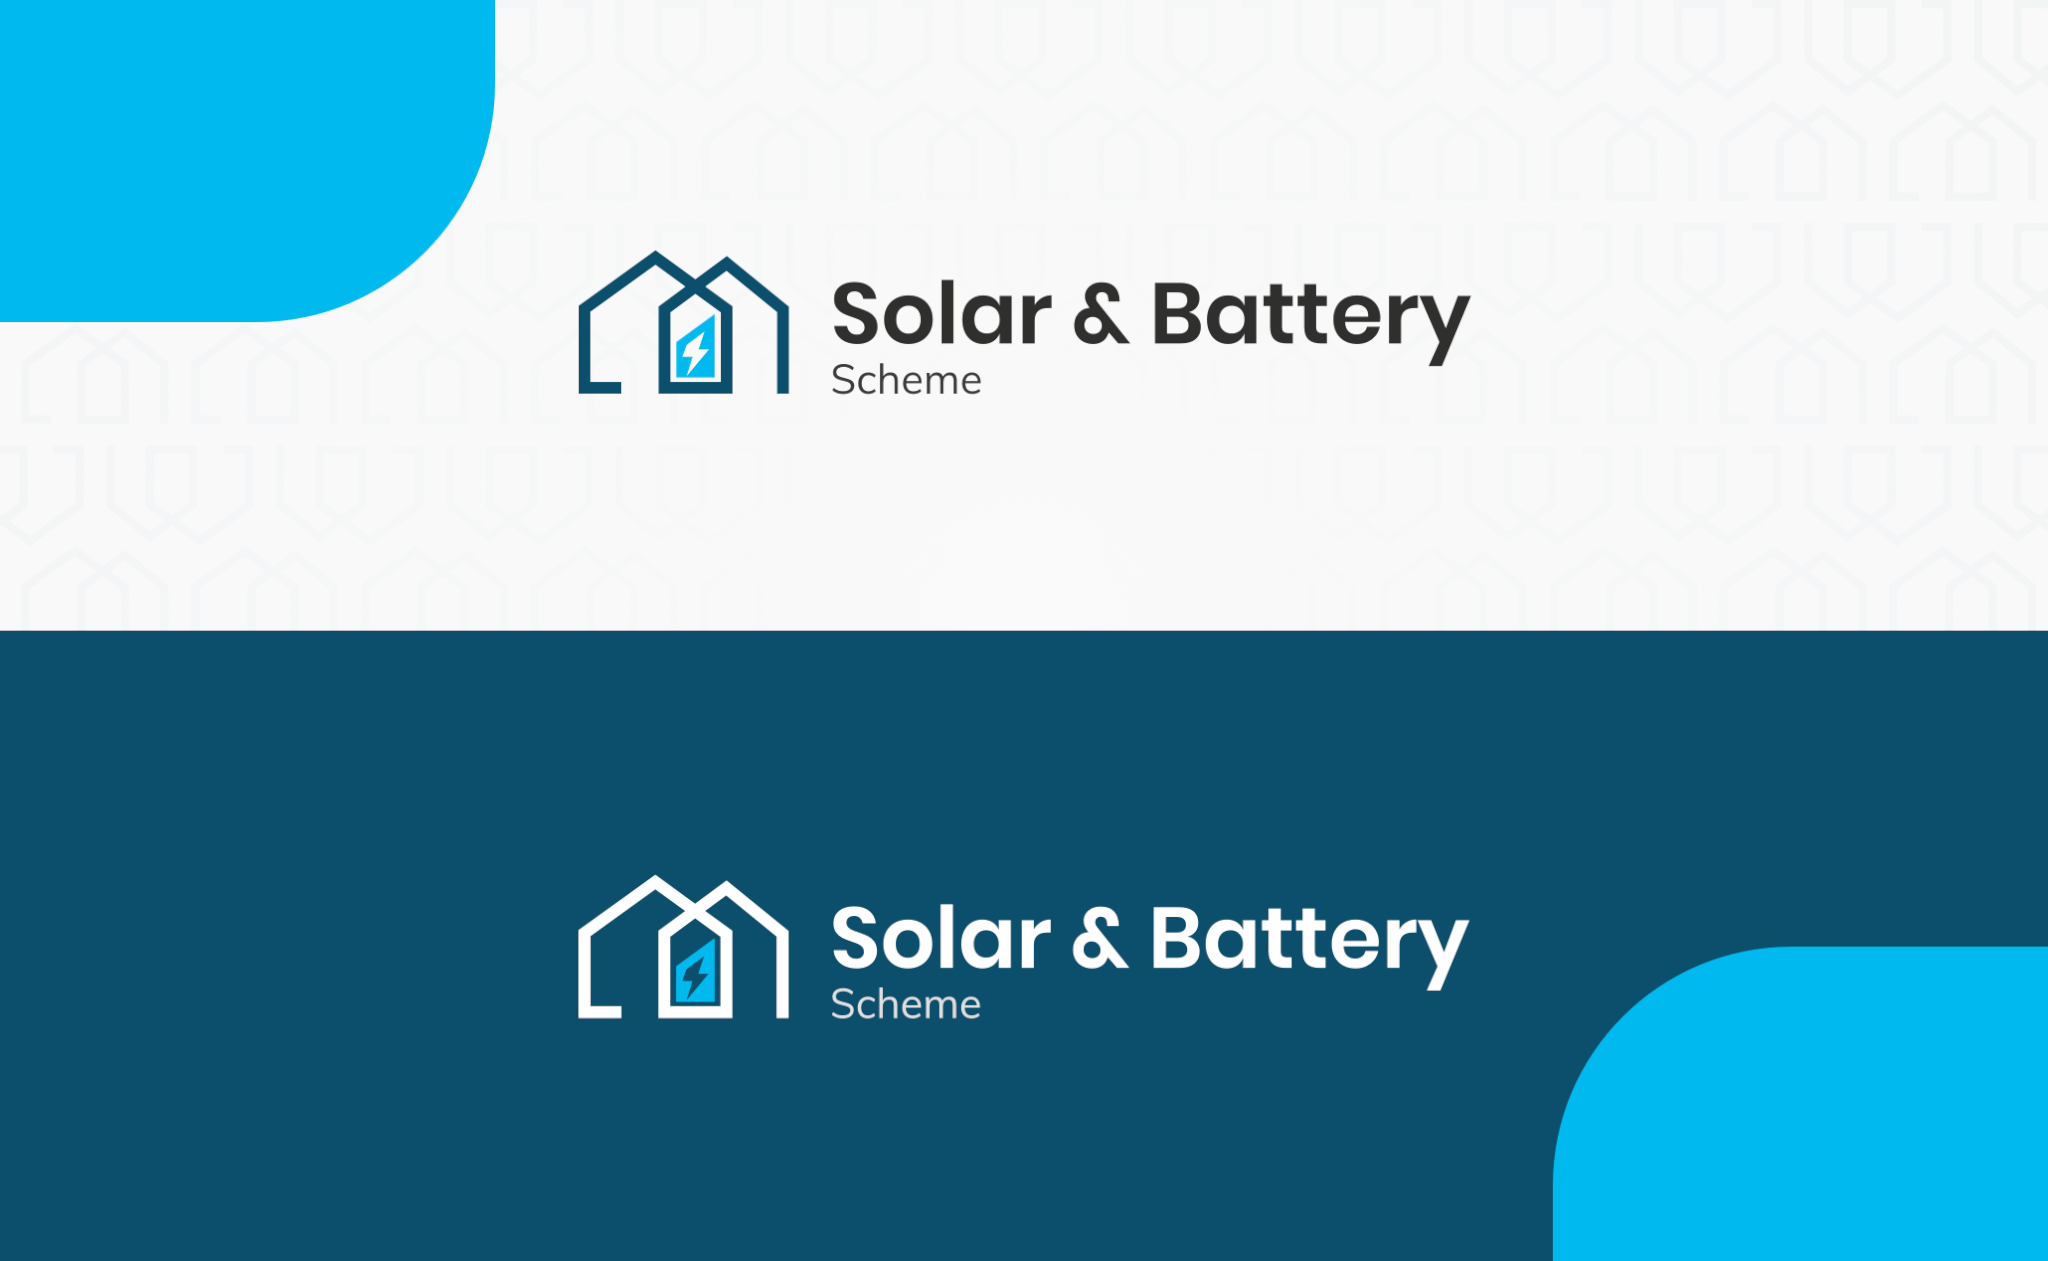 Solar and Battery Scheme logo design project